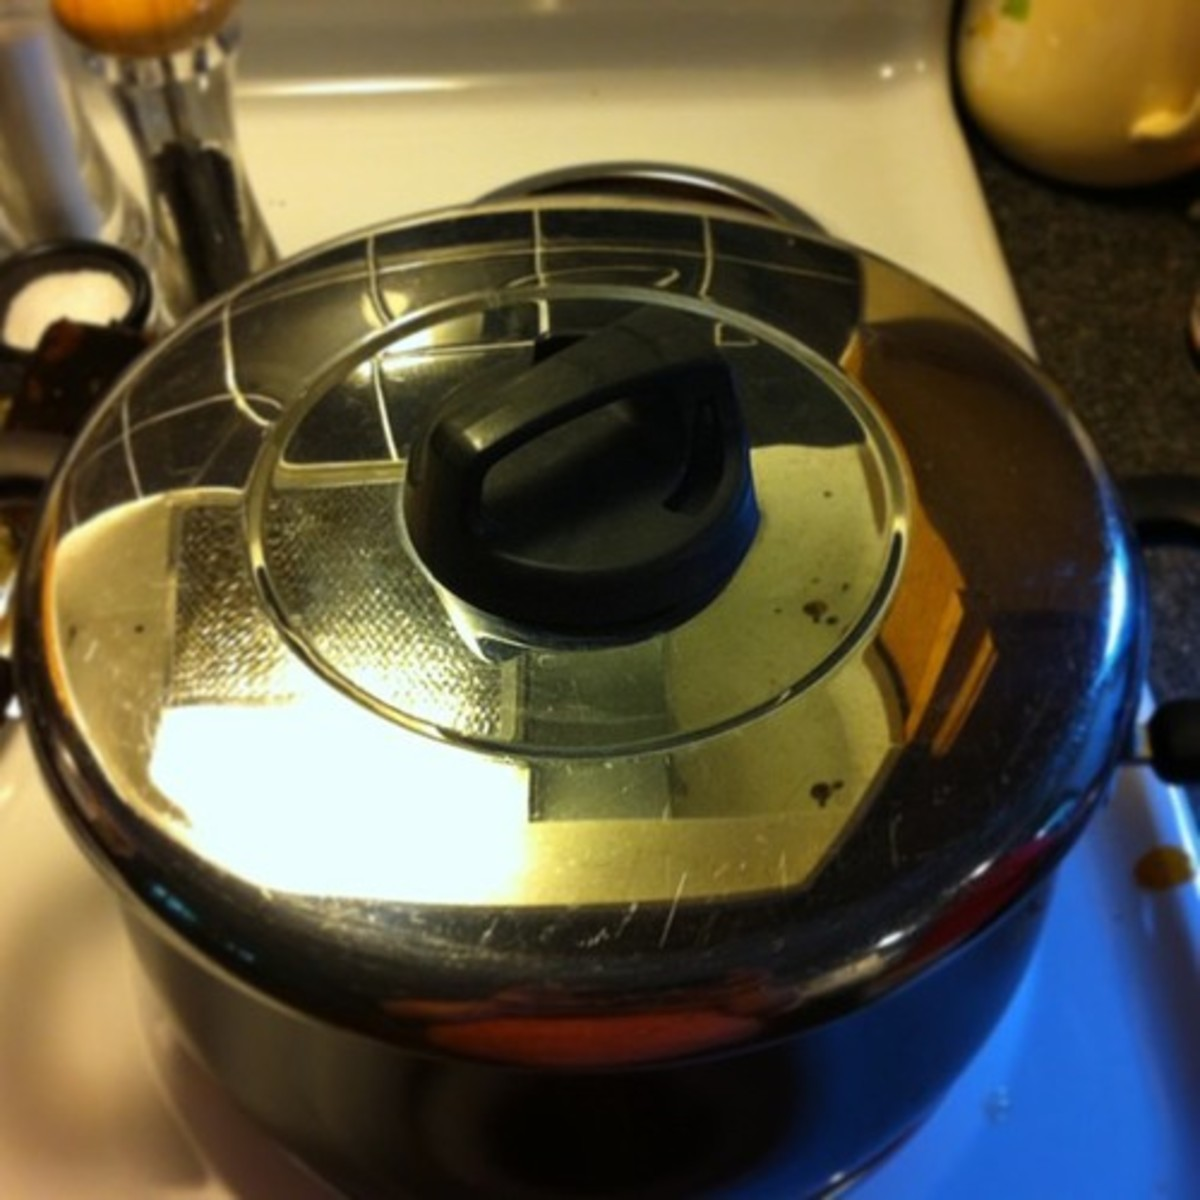 Make sure the lid seals well on your pot. Turning the temperature down will pull the lid on tighter and keep things cooking nicely. If your lid has a vent, close it.